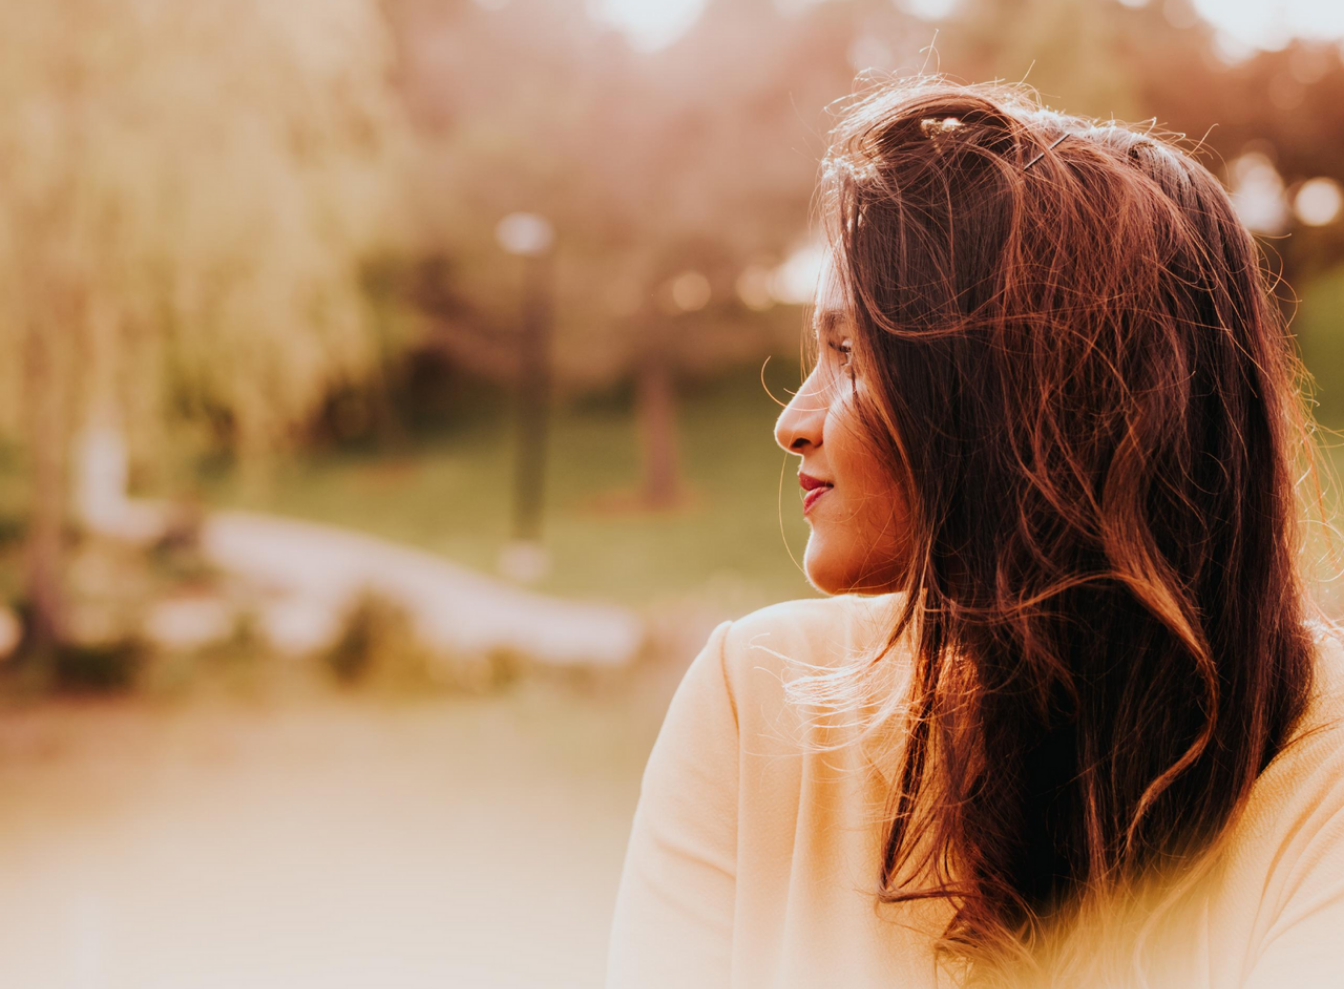 Image of Jenny, a South Asian woman staring off into the distance at a park.